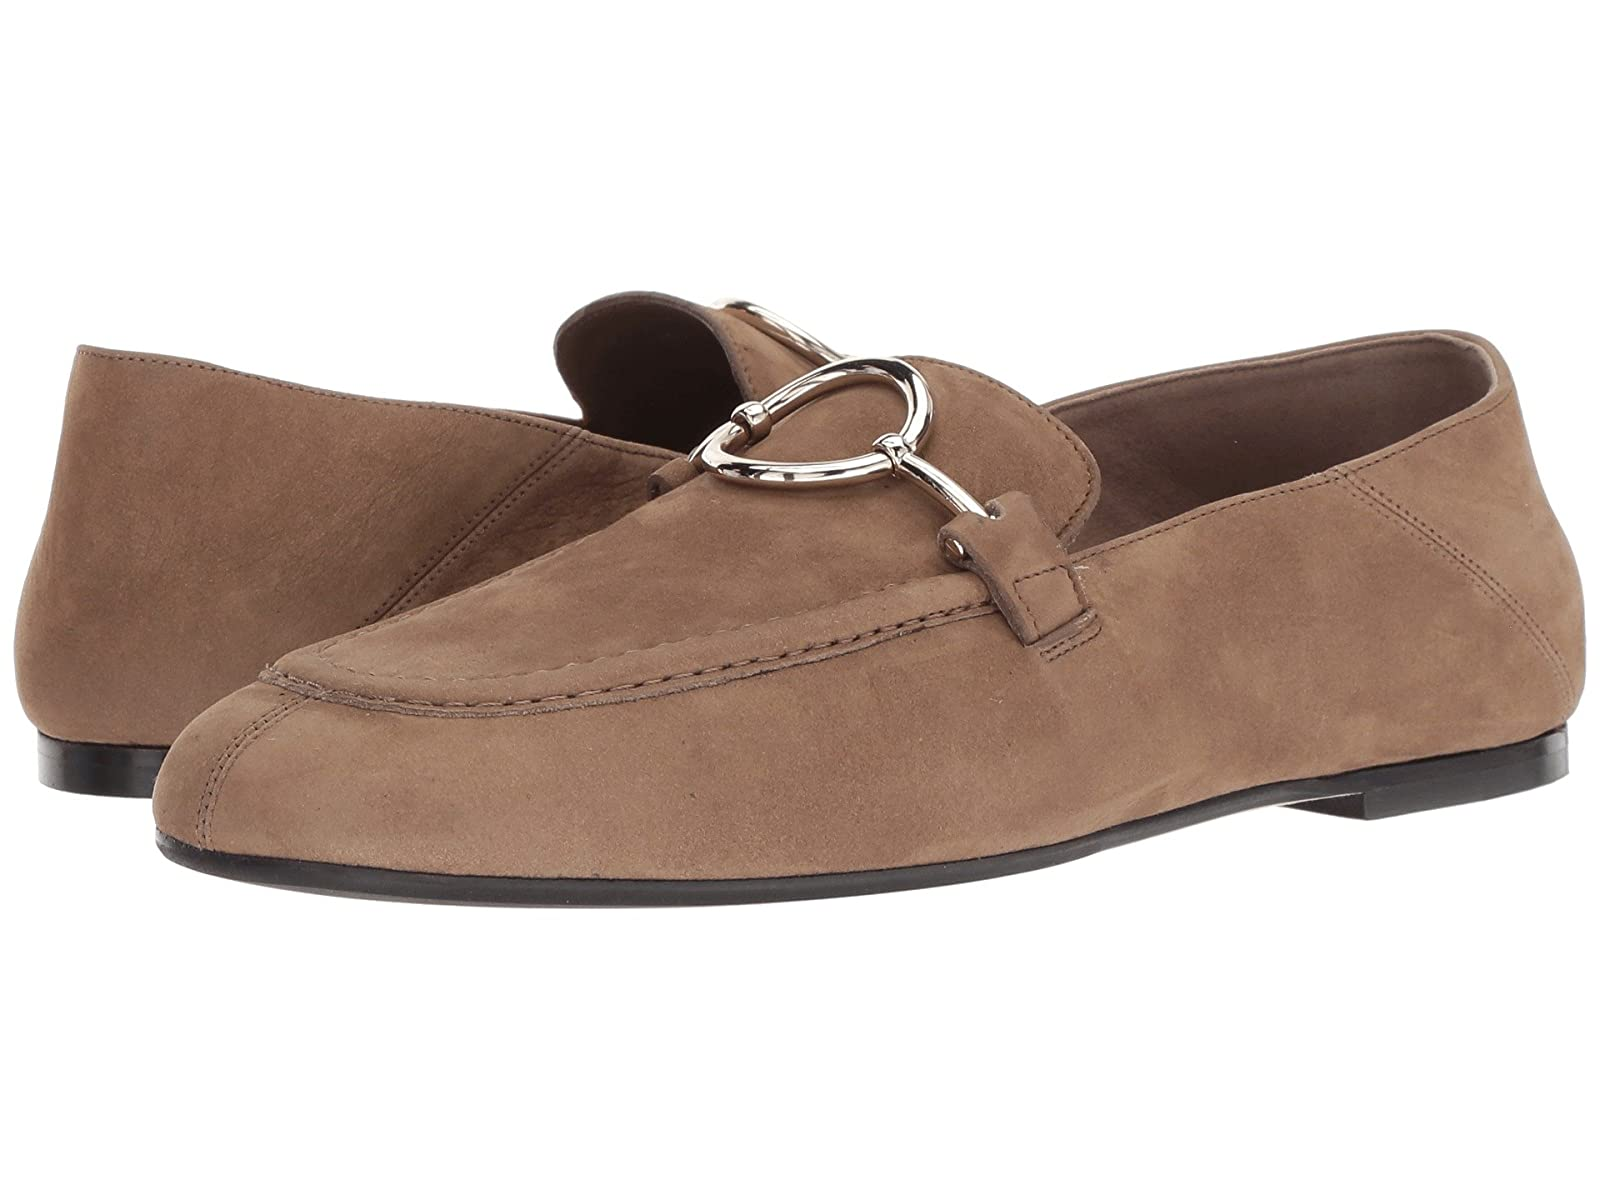 Via Spiga Abby 2Atmospheric grades have affordable shoes